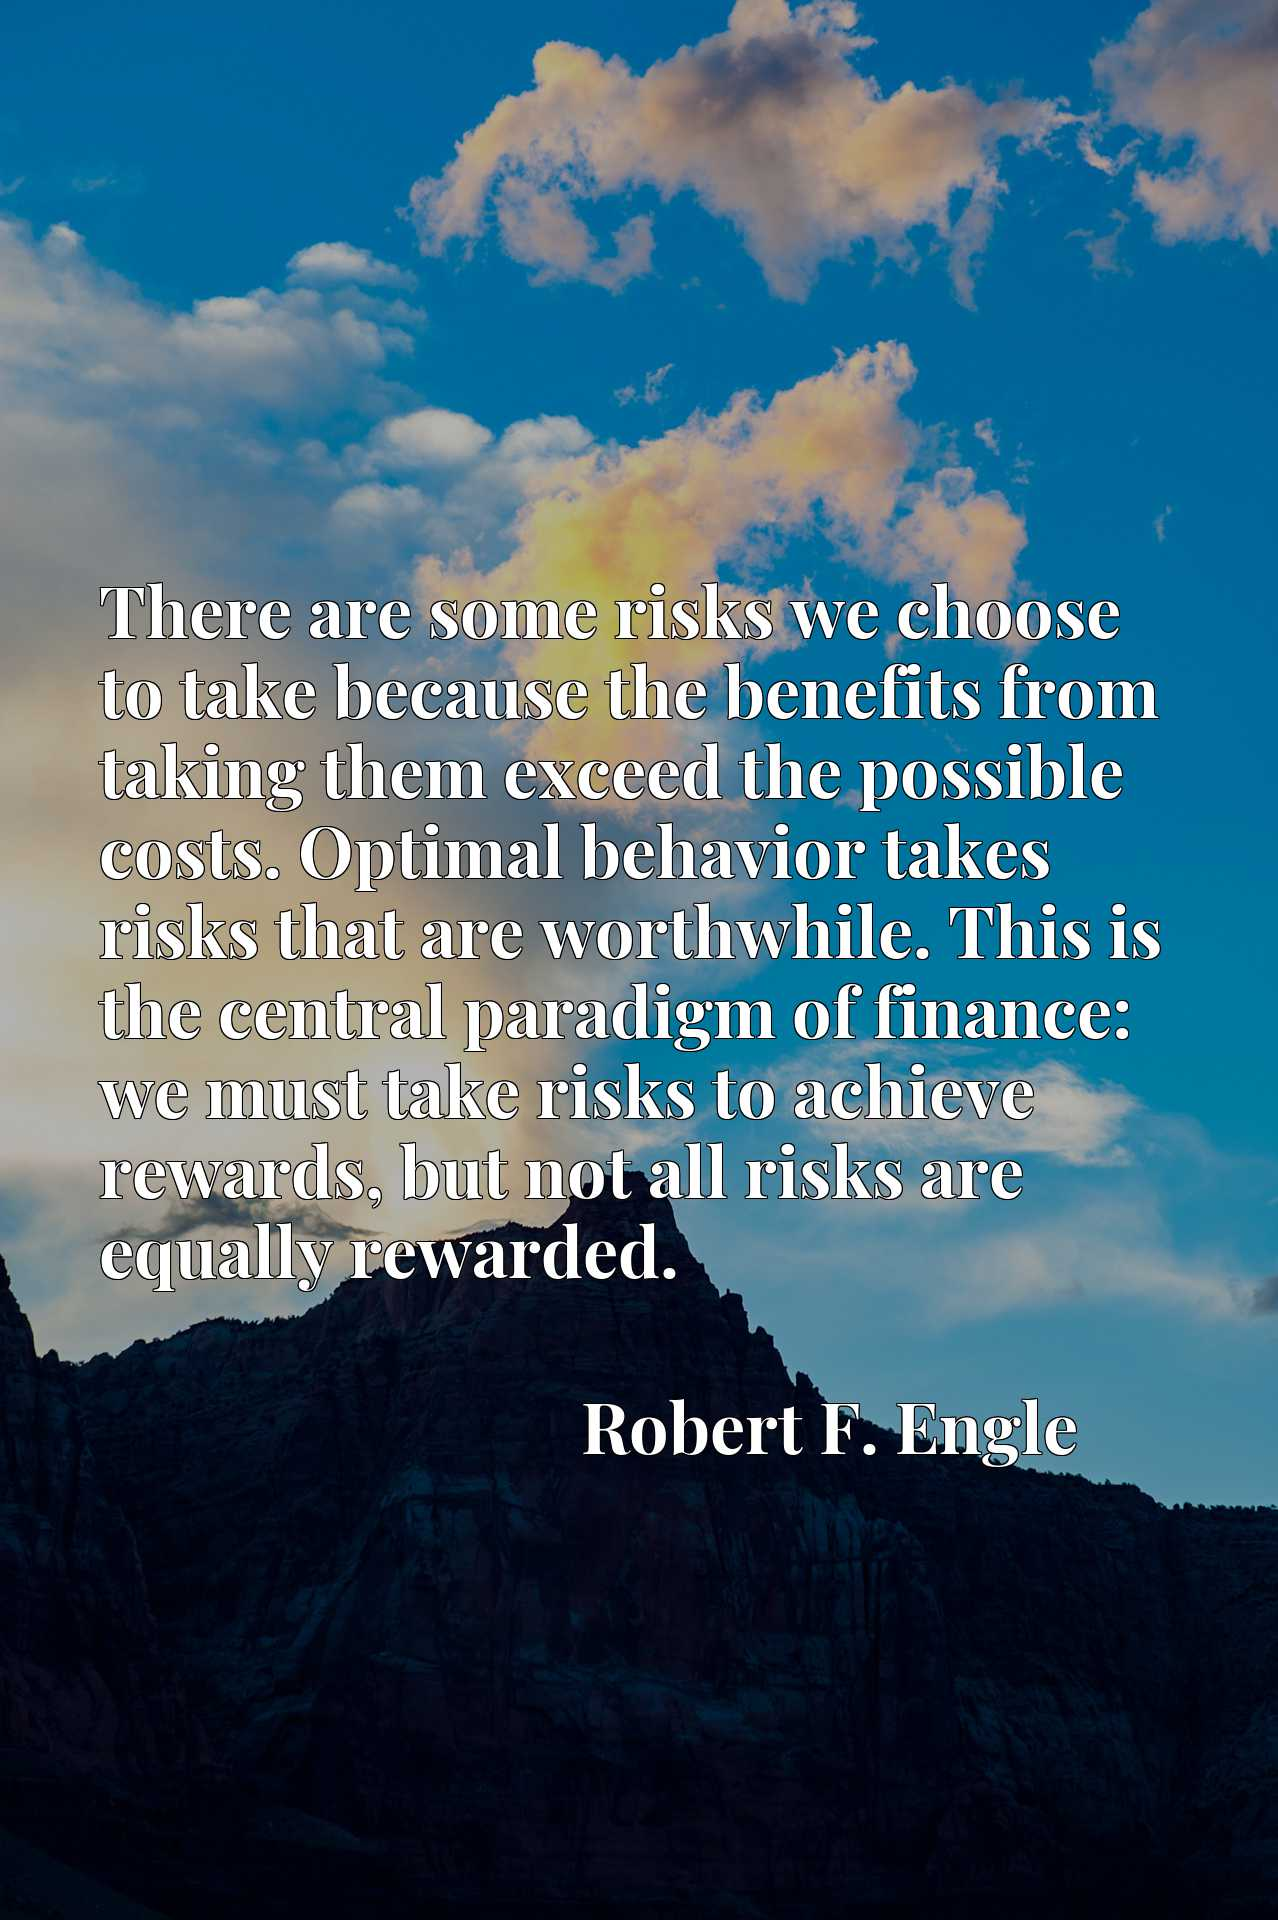 There are some risks we choose to take because the benefits from taking them exceed the possible costs. Optimal behavior takes risks that are worthwhile. This is the central paradigm of finance: we must take risks to achieve rewards, but not all risks are equally rewarded.